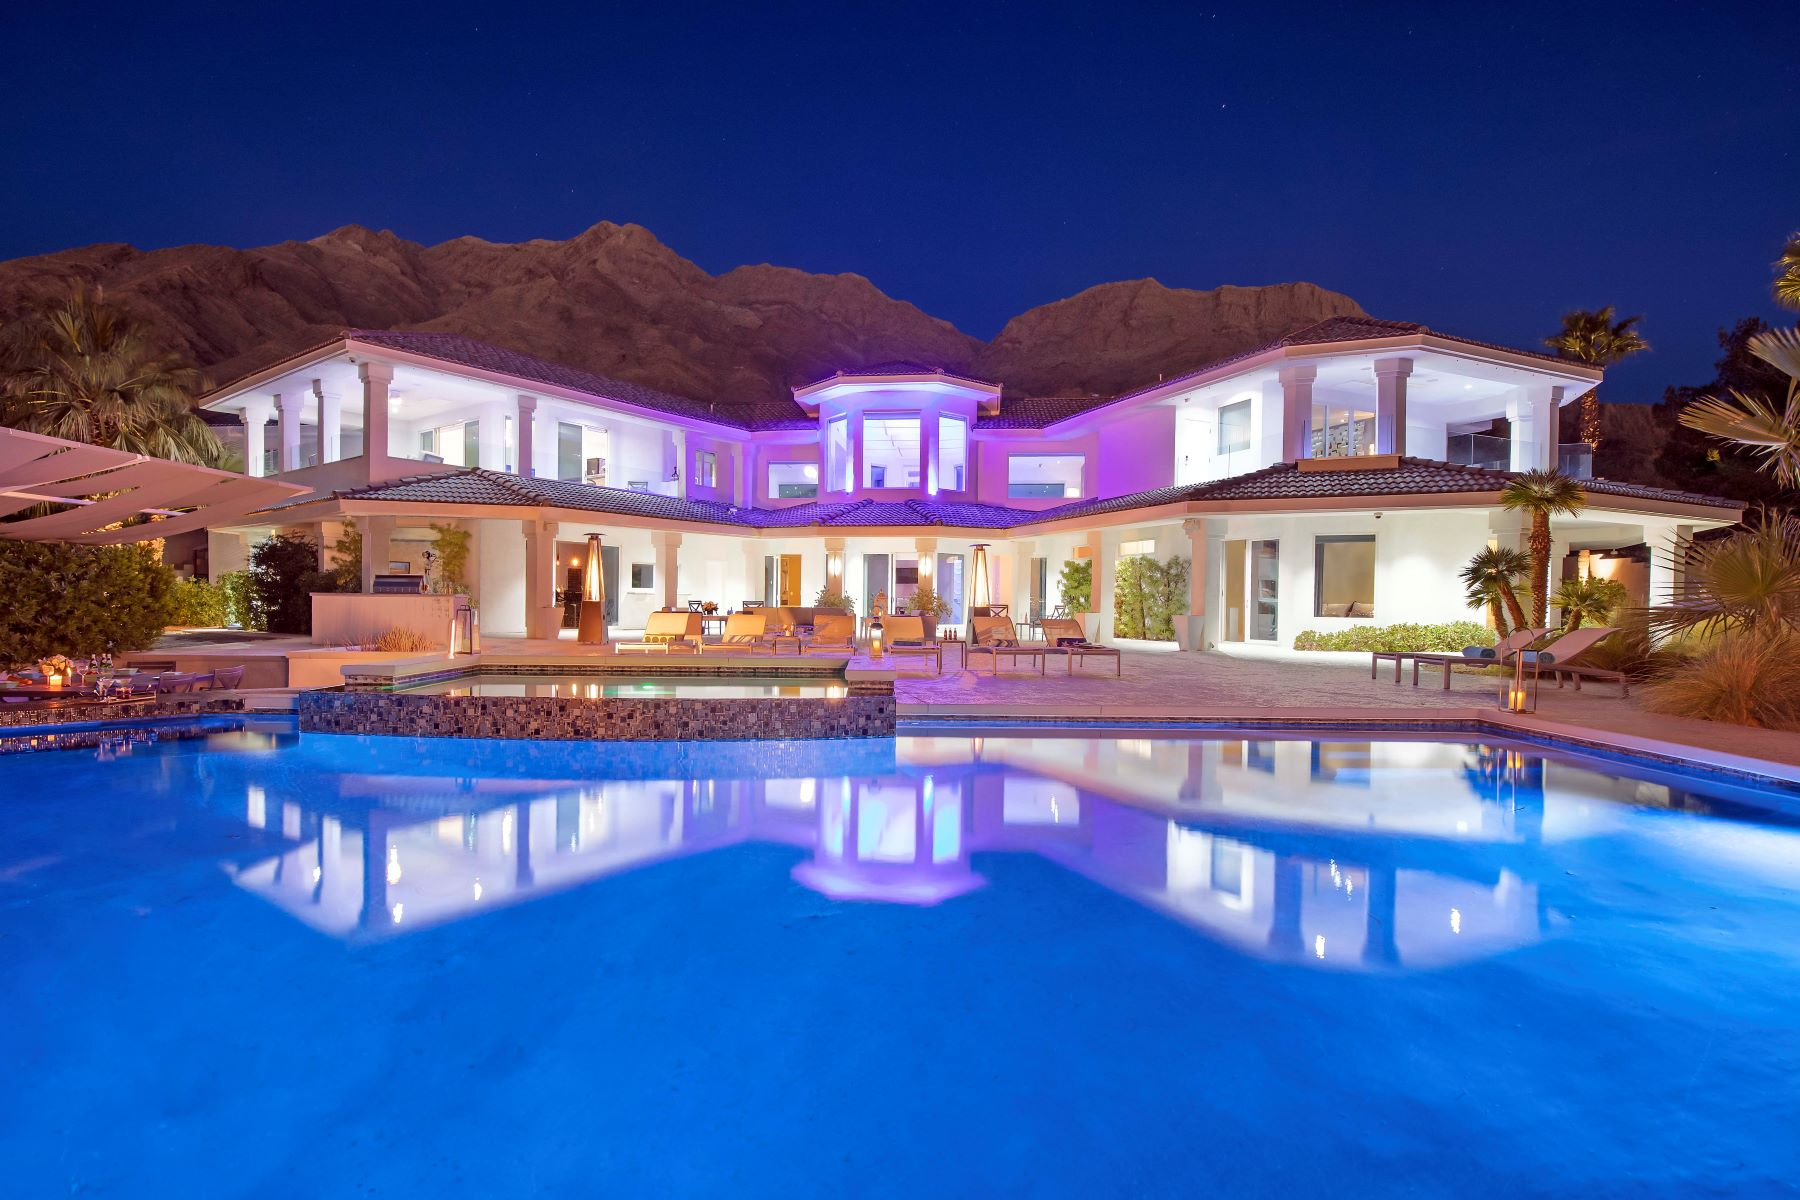 Casa Unifamiliar por un Venta en Sapphire Oasis in Las Vegas. Auction: Bid April 26-29. Currently $4.5M. 460 Probst Way Las Vegas, Nevada 89110 Estados Unidos